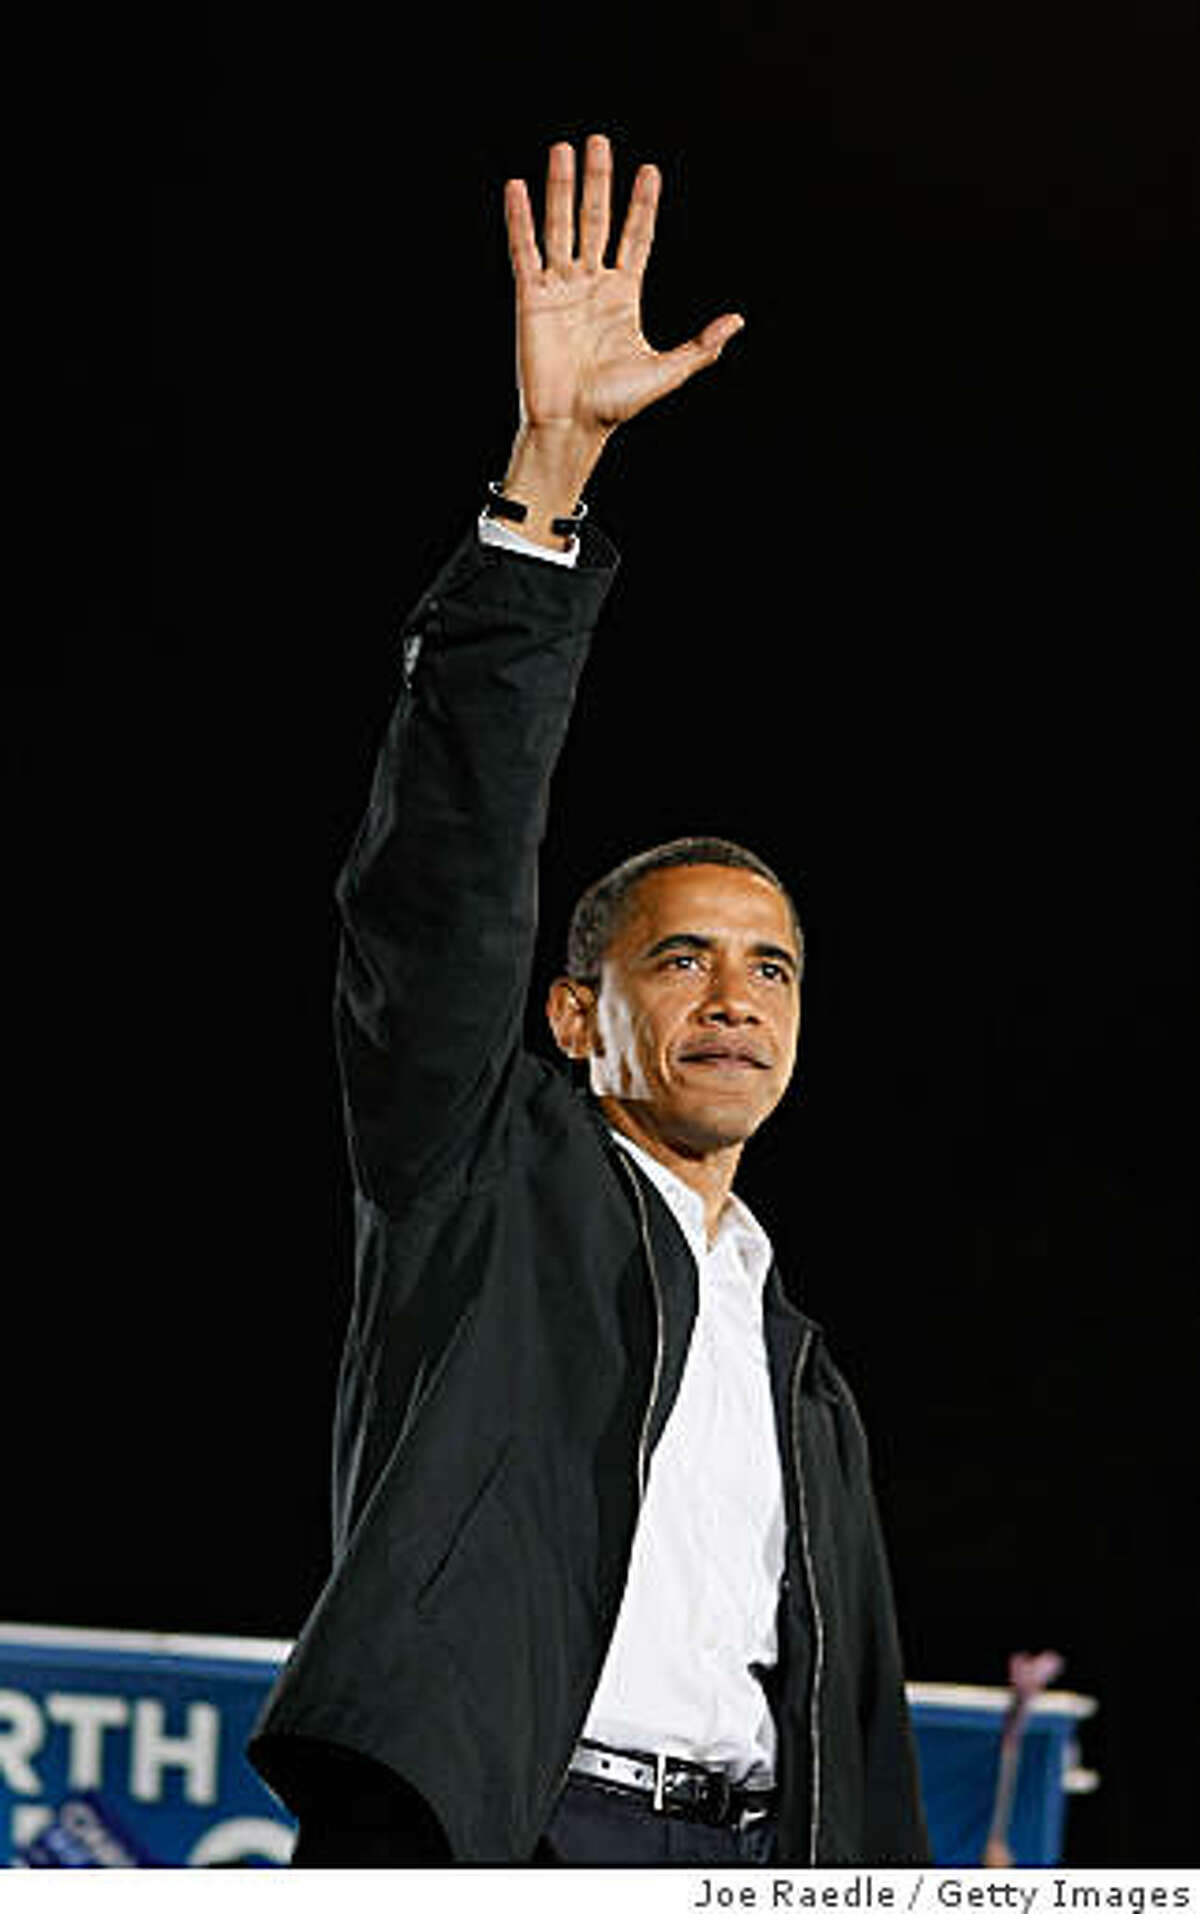 CHARLOTTE, NC- NOVEMBER 03: Democratic presidential nominee U.S. Sen. Barack Obama (D-IL) waves after crying while speaking about his grandmother during a rally at University of North Carolina on November 3, 2008 in Charlotte, North Carolina. Madelyn Dunham, grandmother of Obama, died today of cancer at age 86. Obama continues to campaigns on the eve of Election day with the polls still showing him leading in the race against the Republican presidential nominee U.S. Sen. John McCain (R-AZ). (Photo by Joe Raedle/Getty Images)